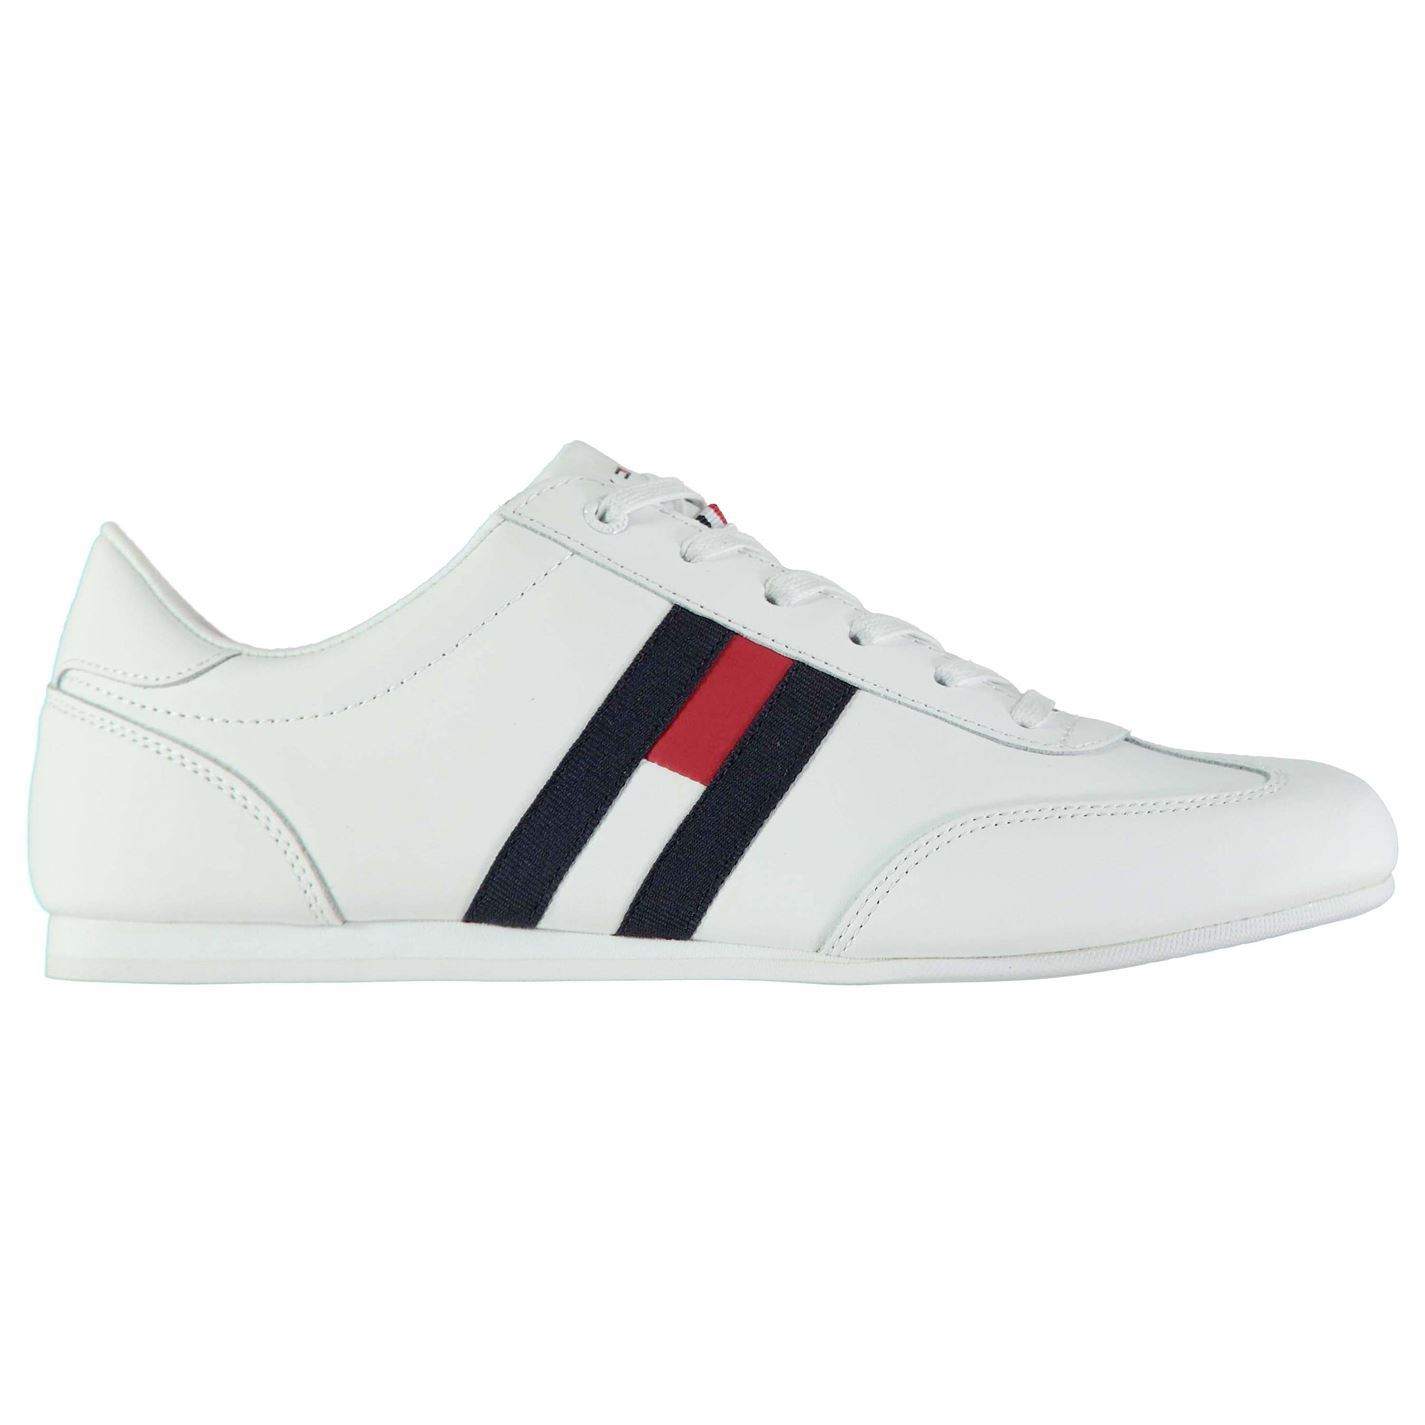 126f593b3abf Details about Mens Tommy Hilfiger Rusc Leather Trainers Low Shoes Tonal  Stitching New